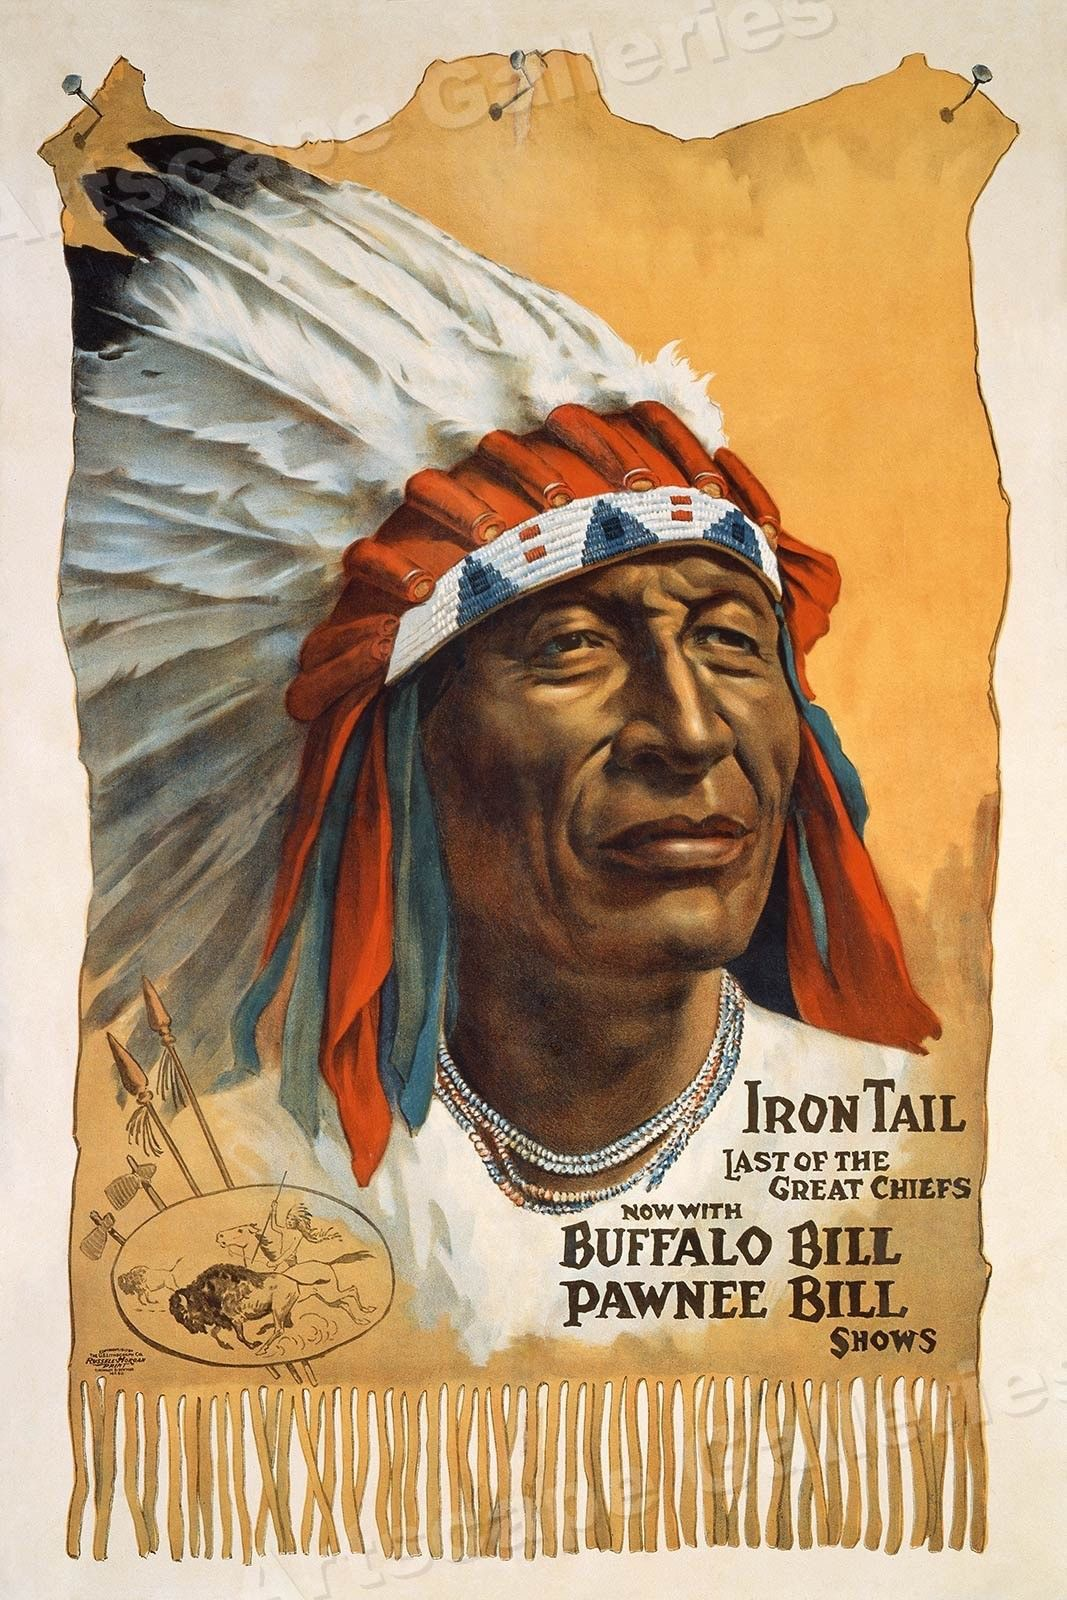 16x24 1912 Old West Show Indian Chief Poster Buffalo Bill Pawnee Bill